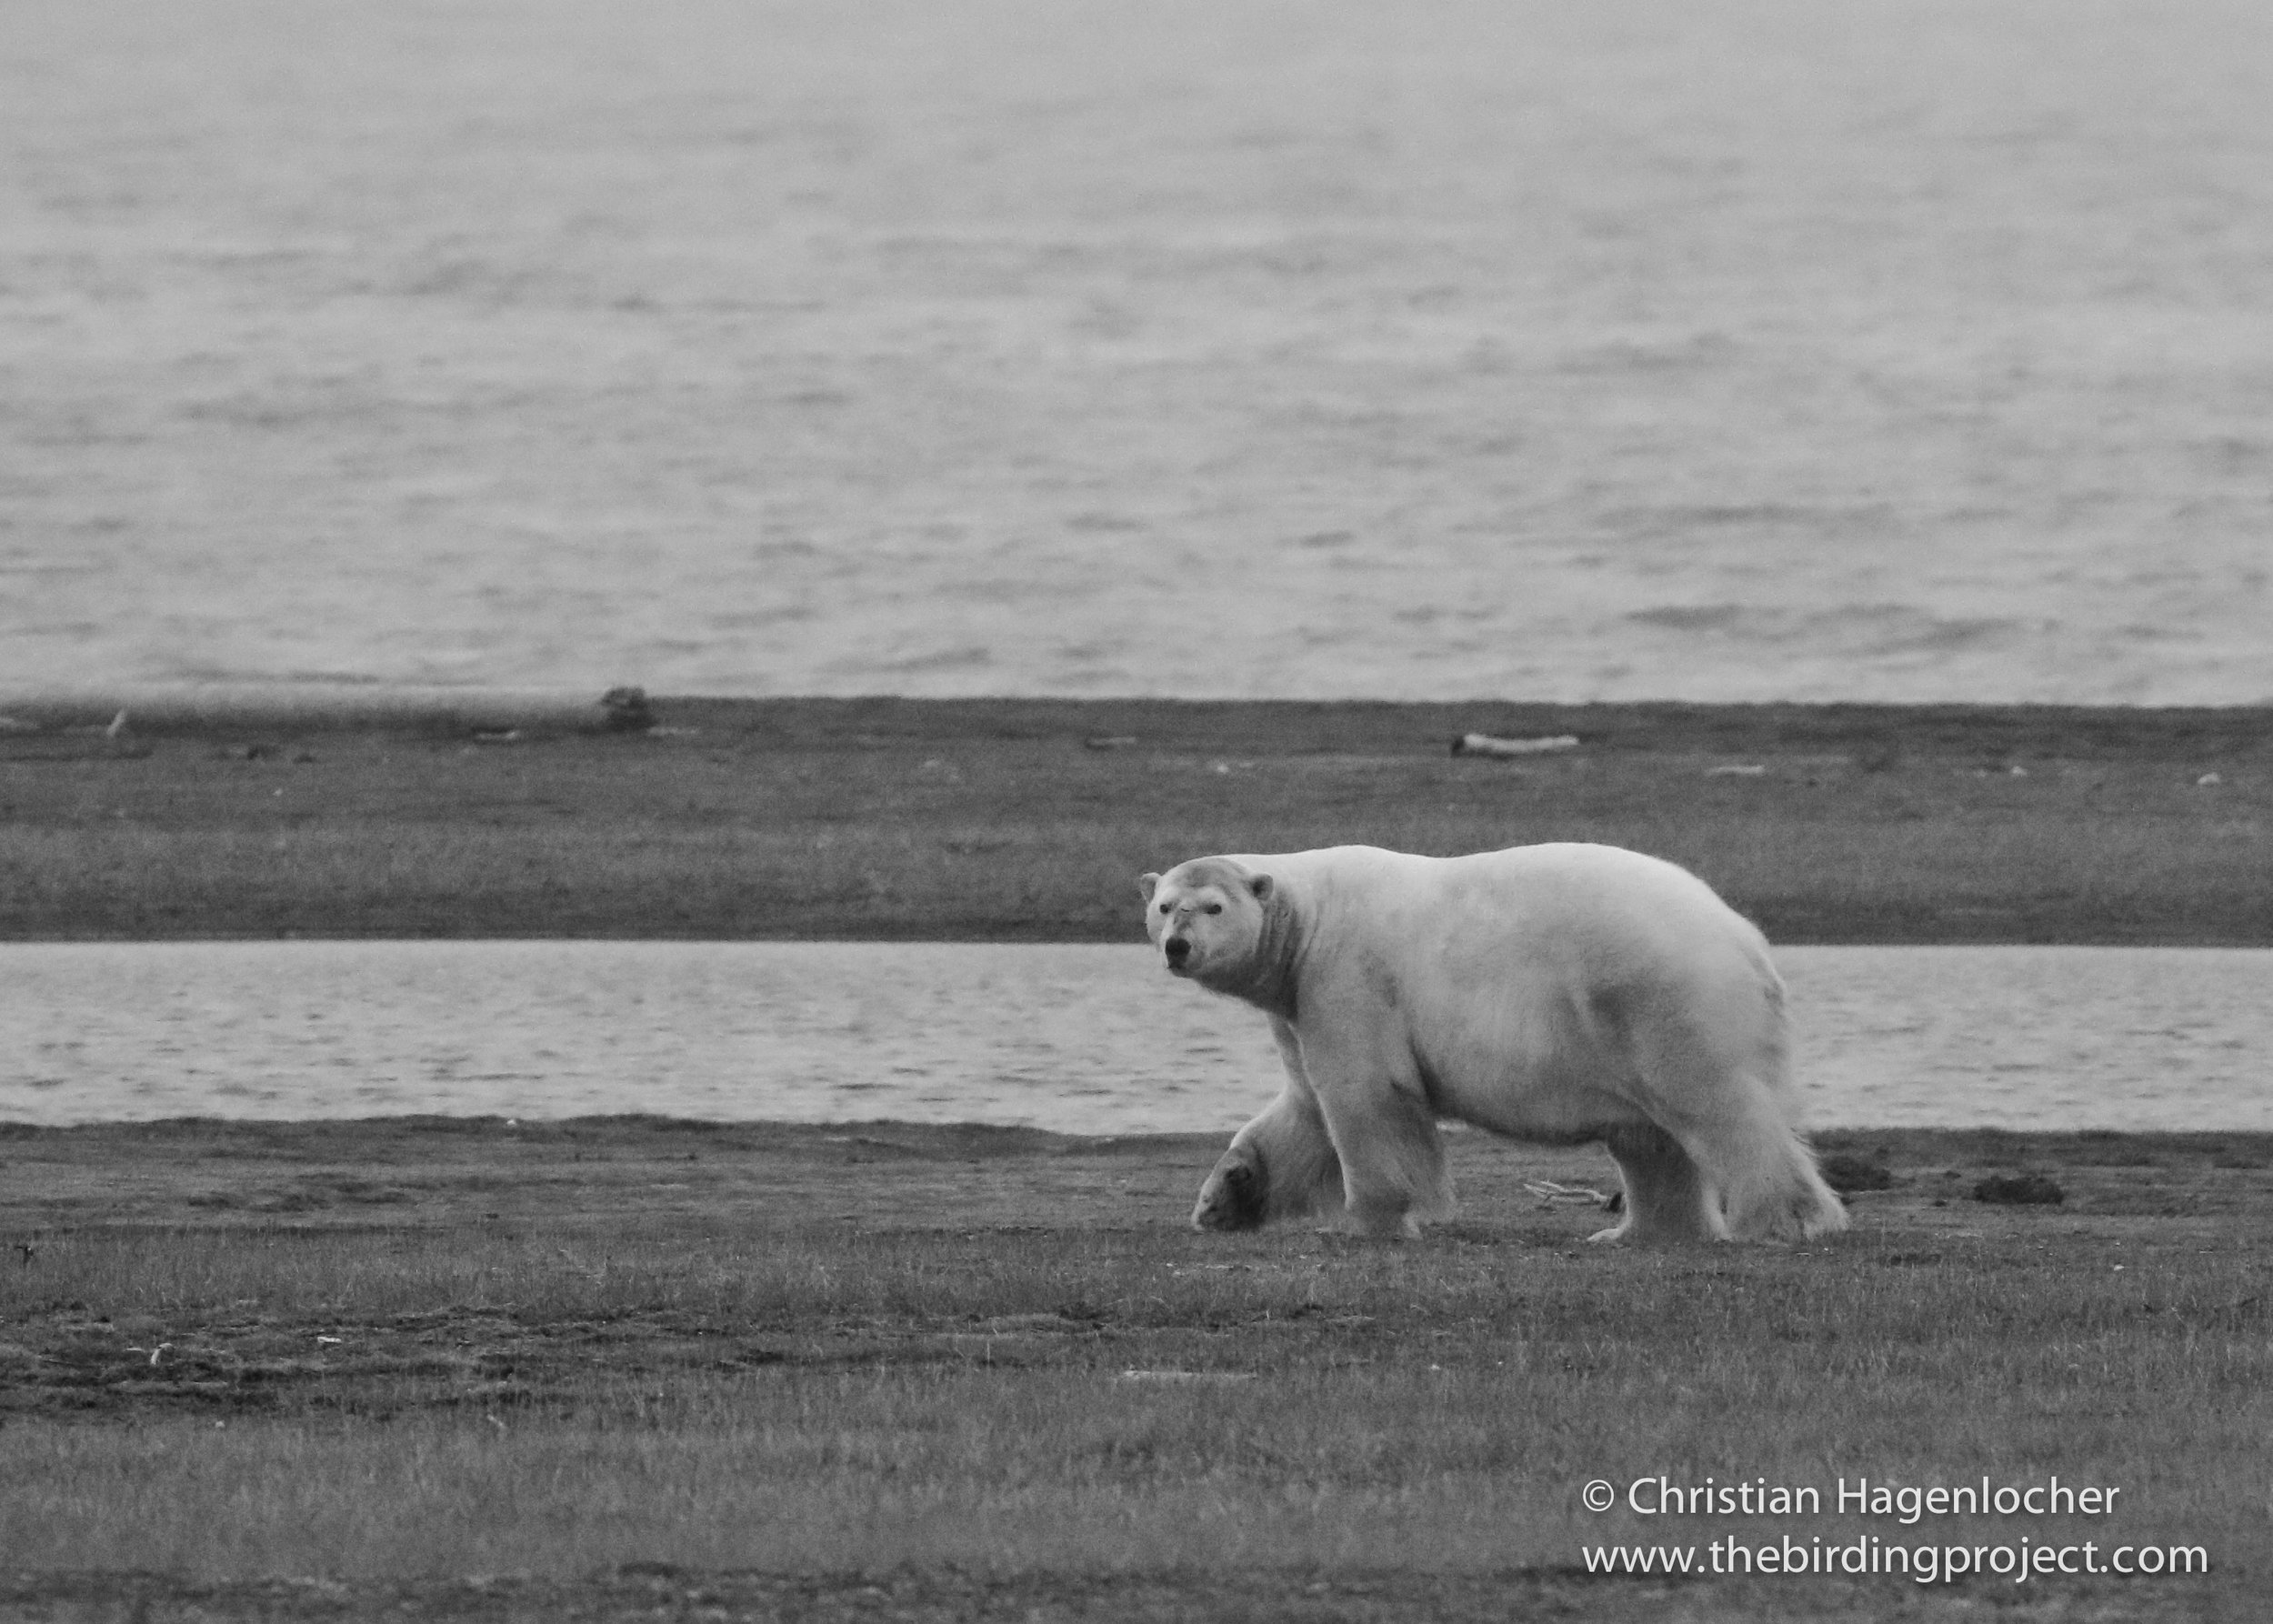 A Polar Bear takes a casual stroll, keeping a close eye on me.  This image was taken at 400mm, and cropped in post-production.